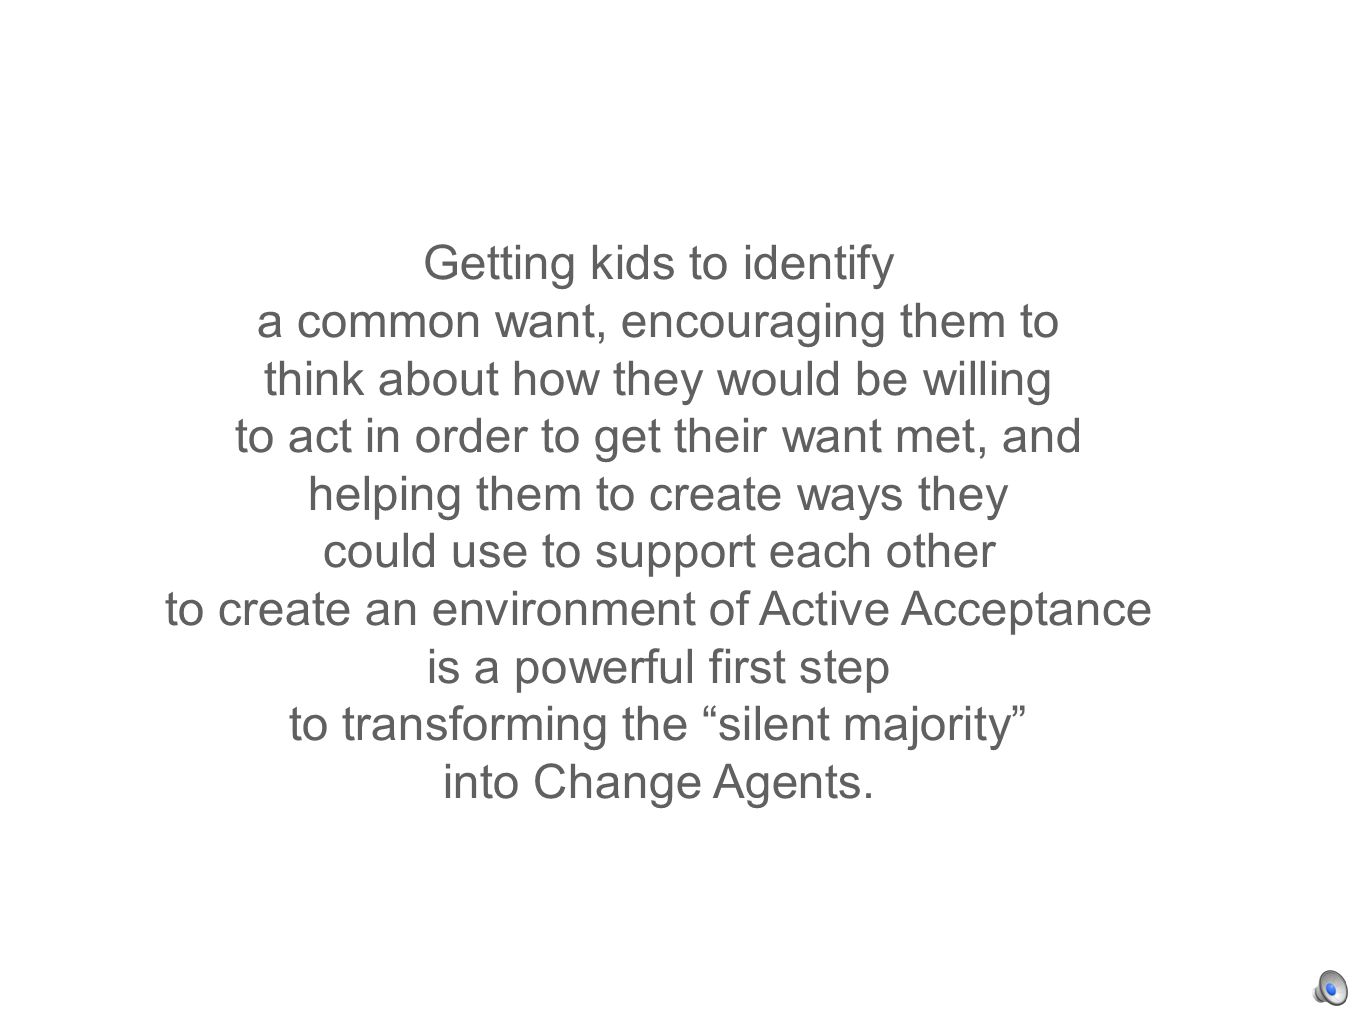 Getting kids to identify a common want, encouraging them to think about how they would be willing to act in order to get their want met, and helping them to create ways they could use to support each other to create an environment of Active Acceptance is a powerful first step to transforming the silent majority into Change Agents.